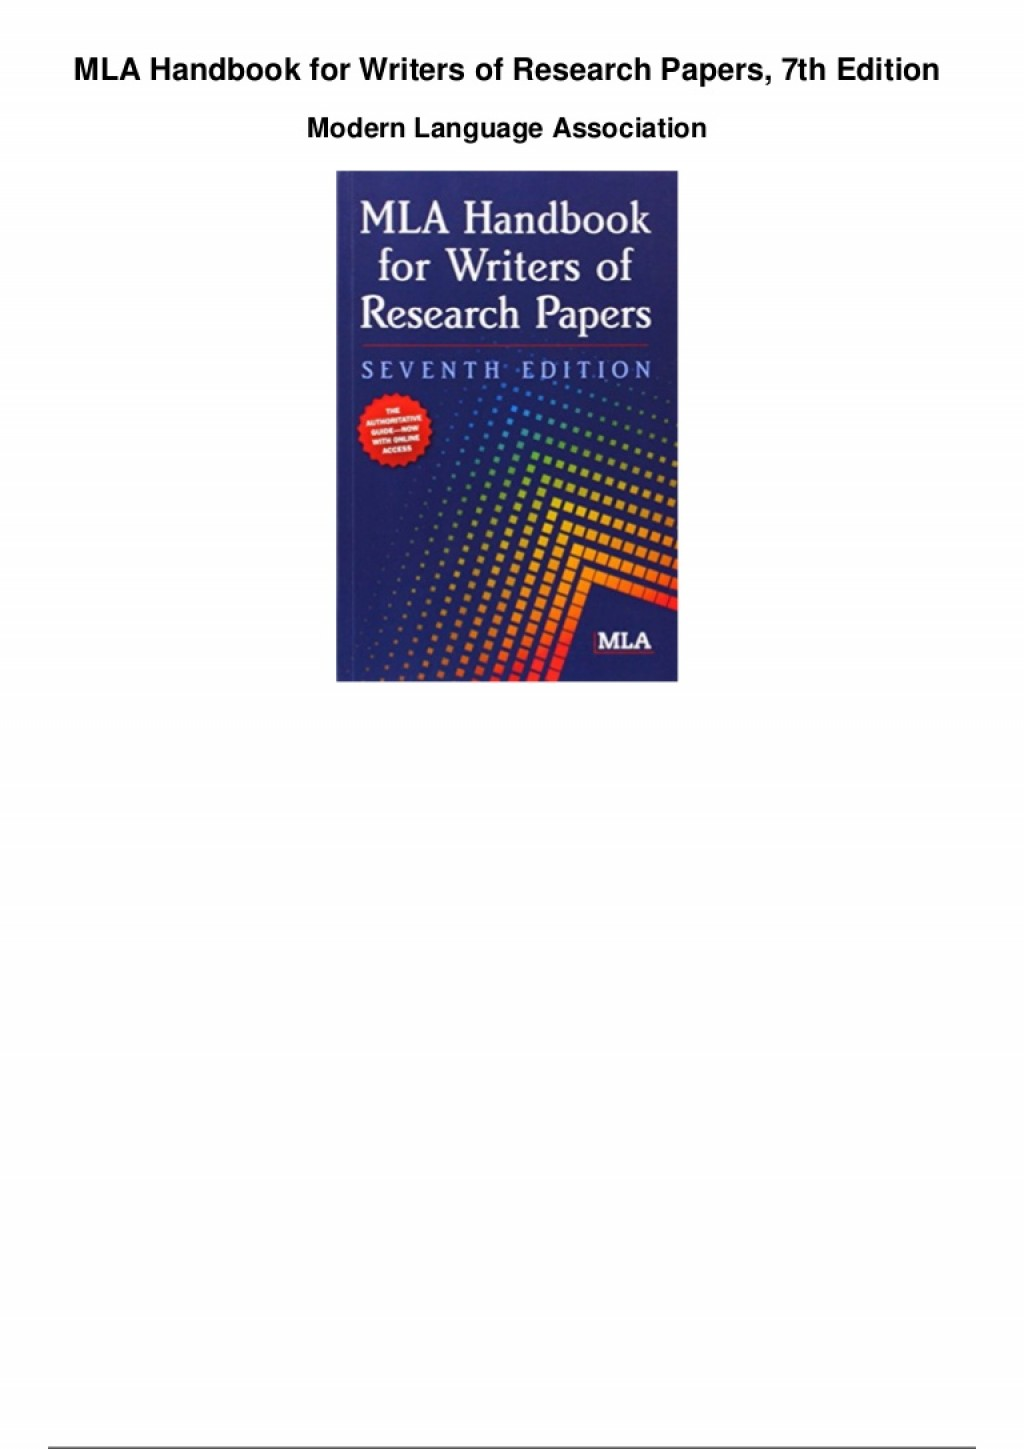 002 Mla Handbook For Writers Of Research Papers 7th Edition Paper Thumbnail Fearsome Pdf Free 2009 Summary Large